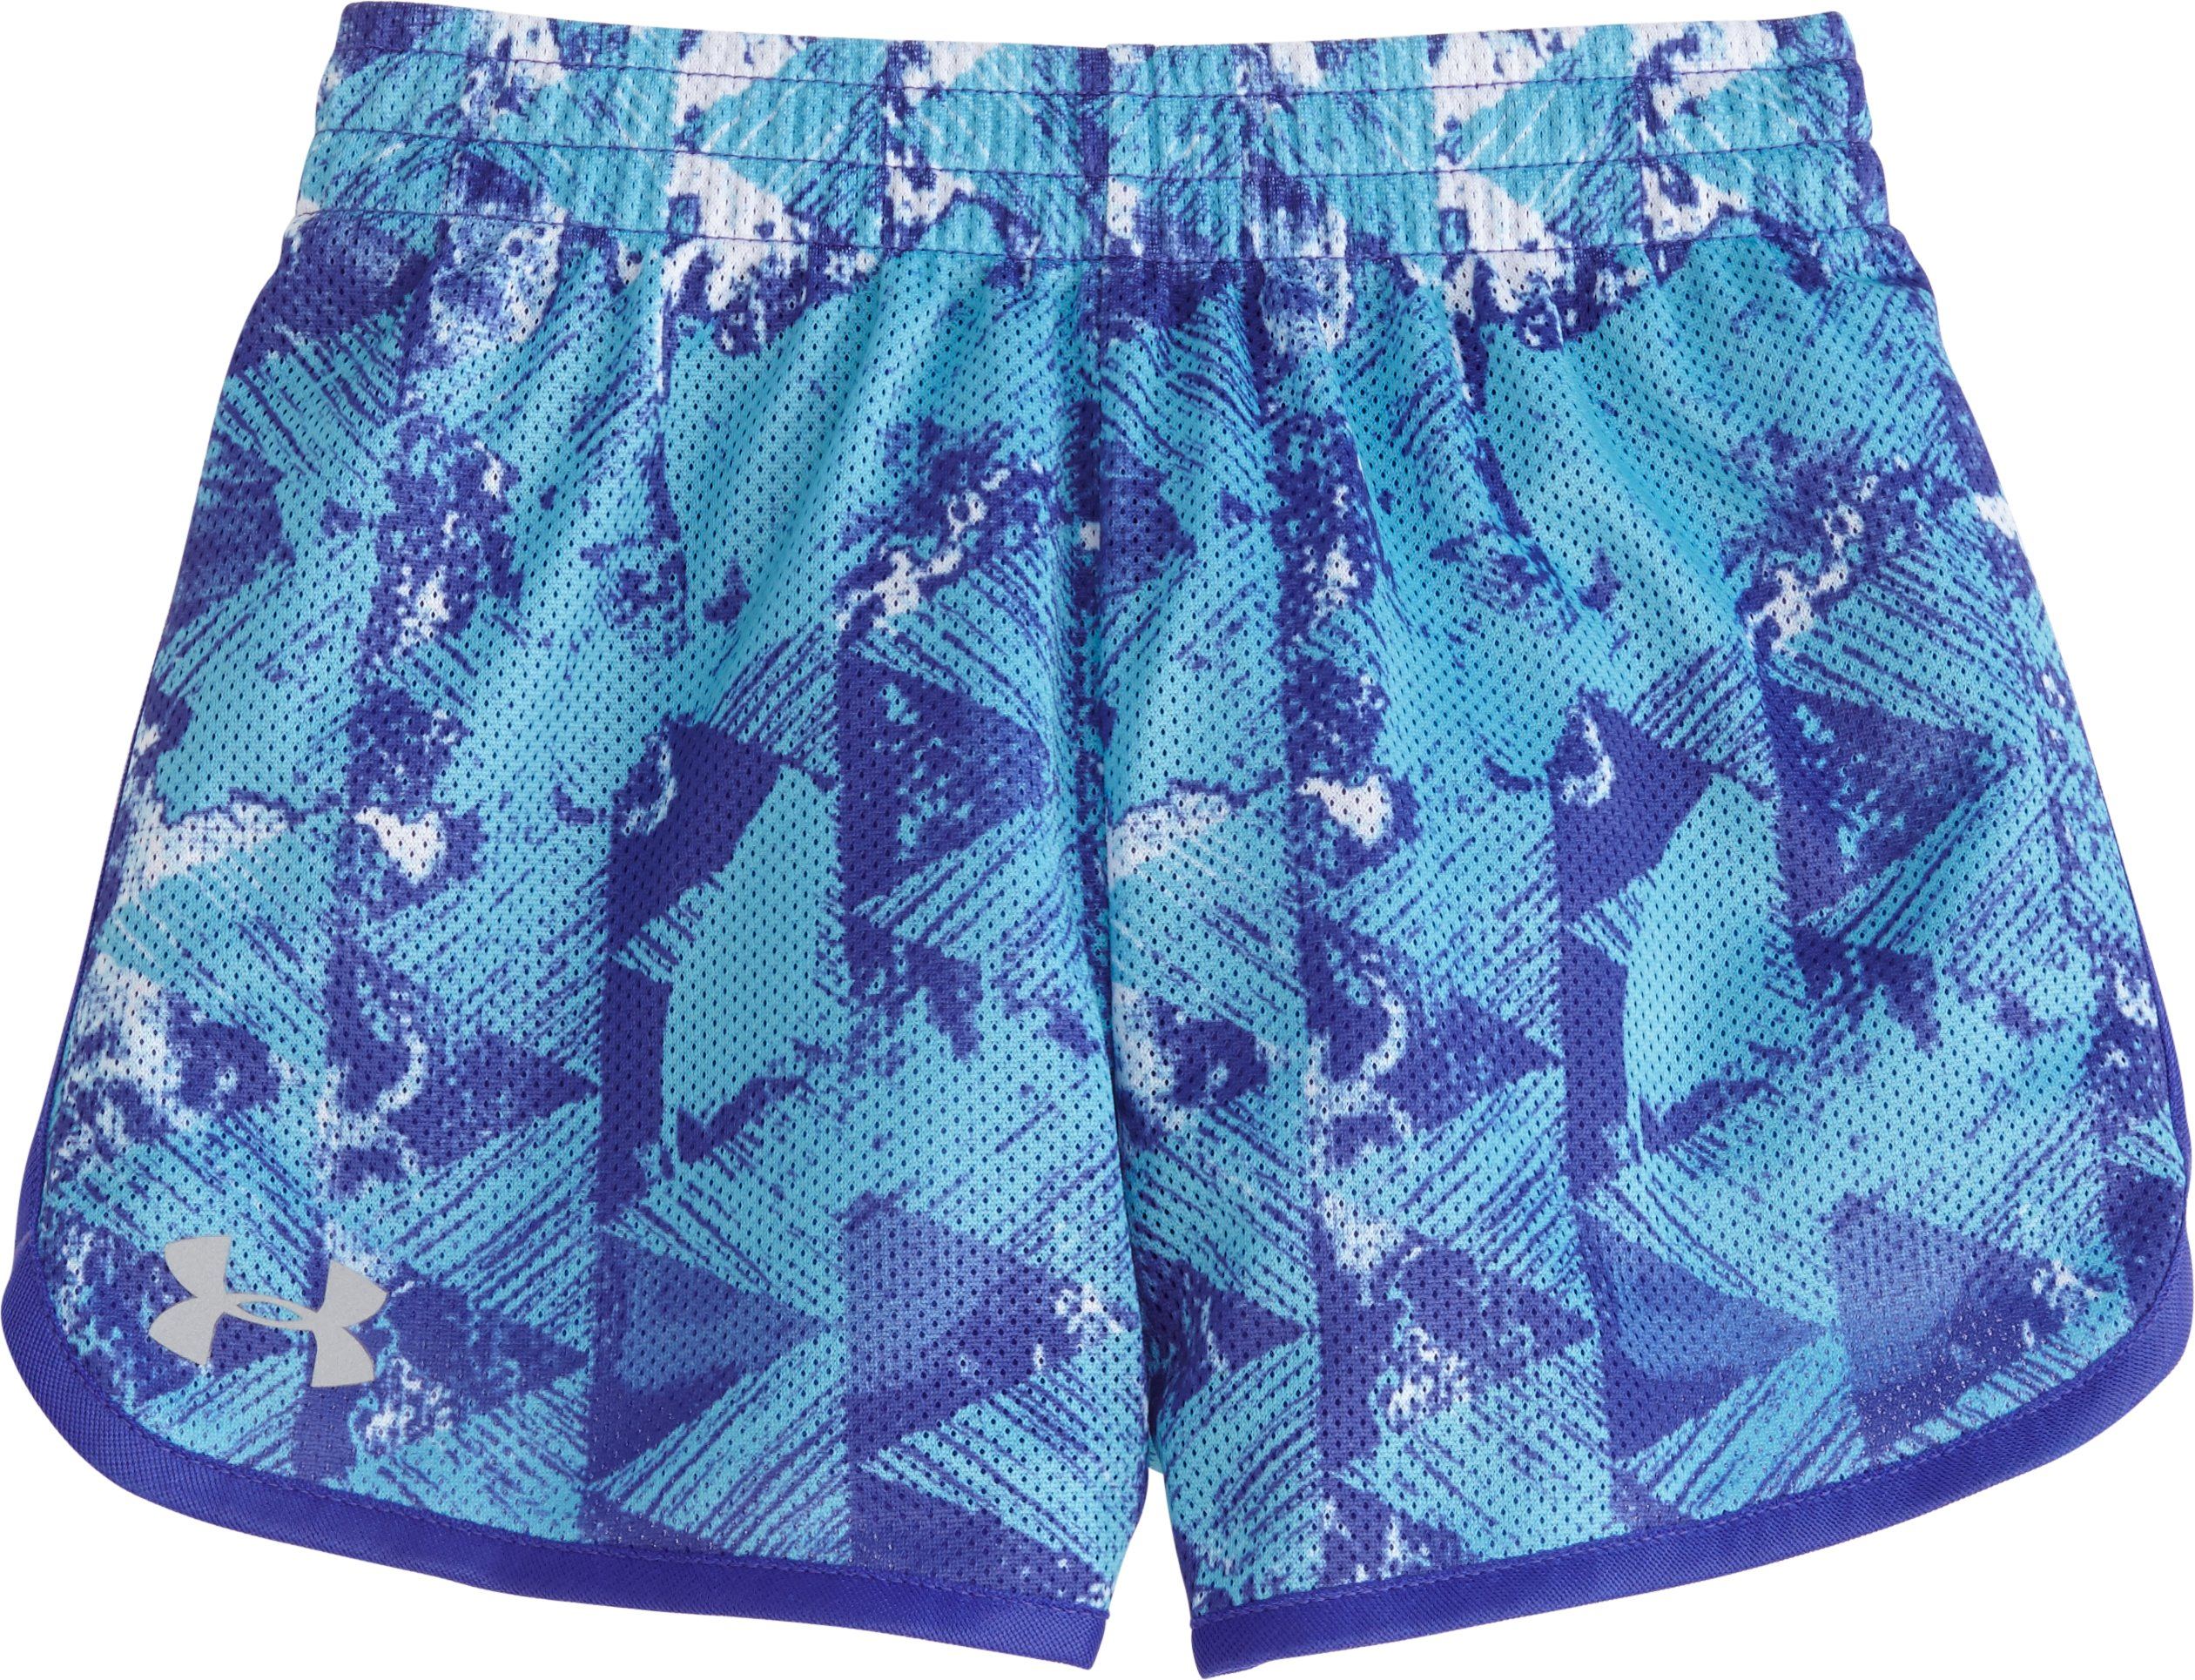 Girls' Toddler UA Knockout Essential Shorts, MERIDIAN BLUE, zoomed image